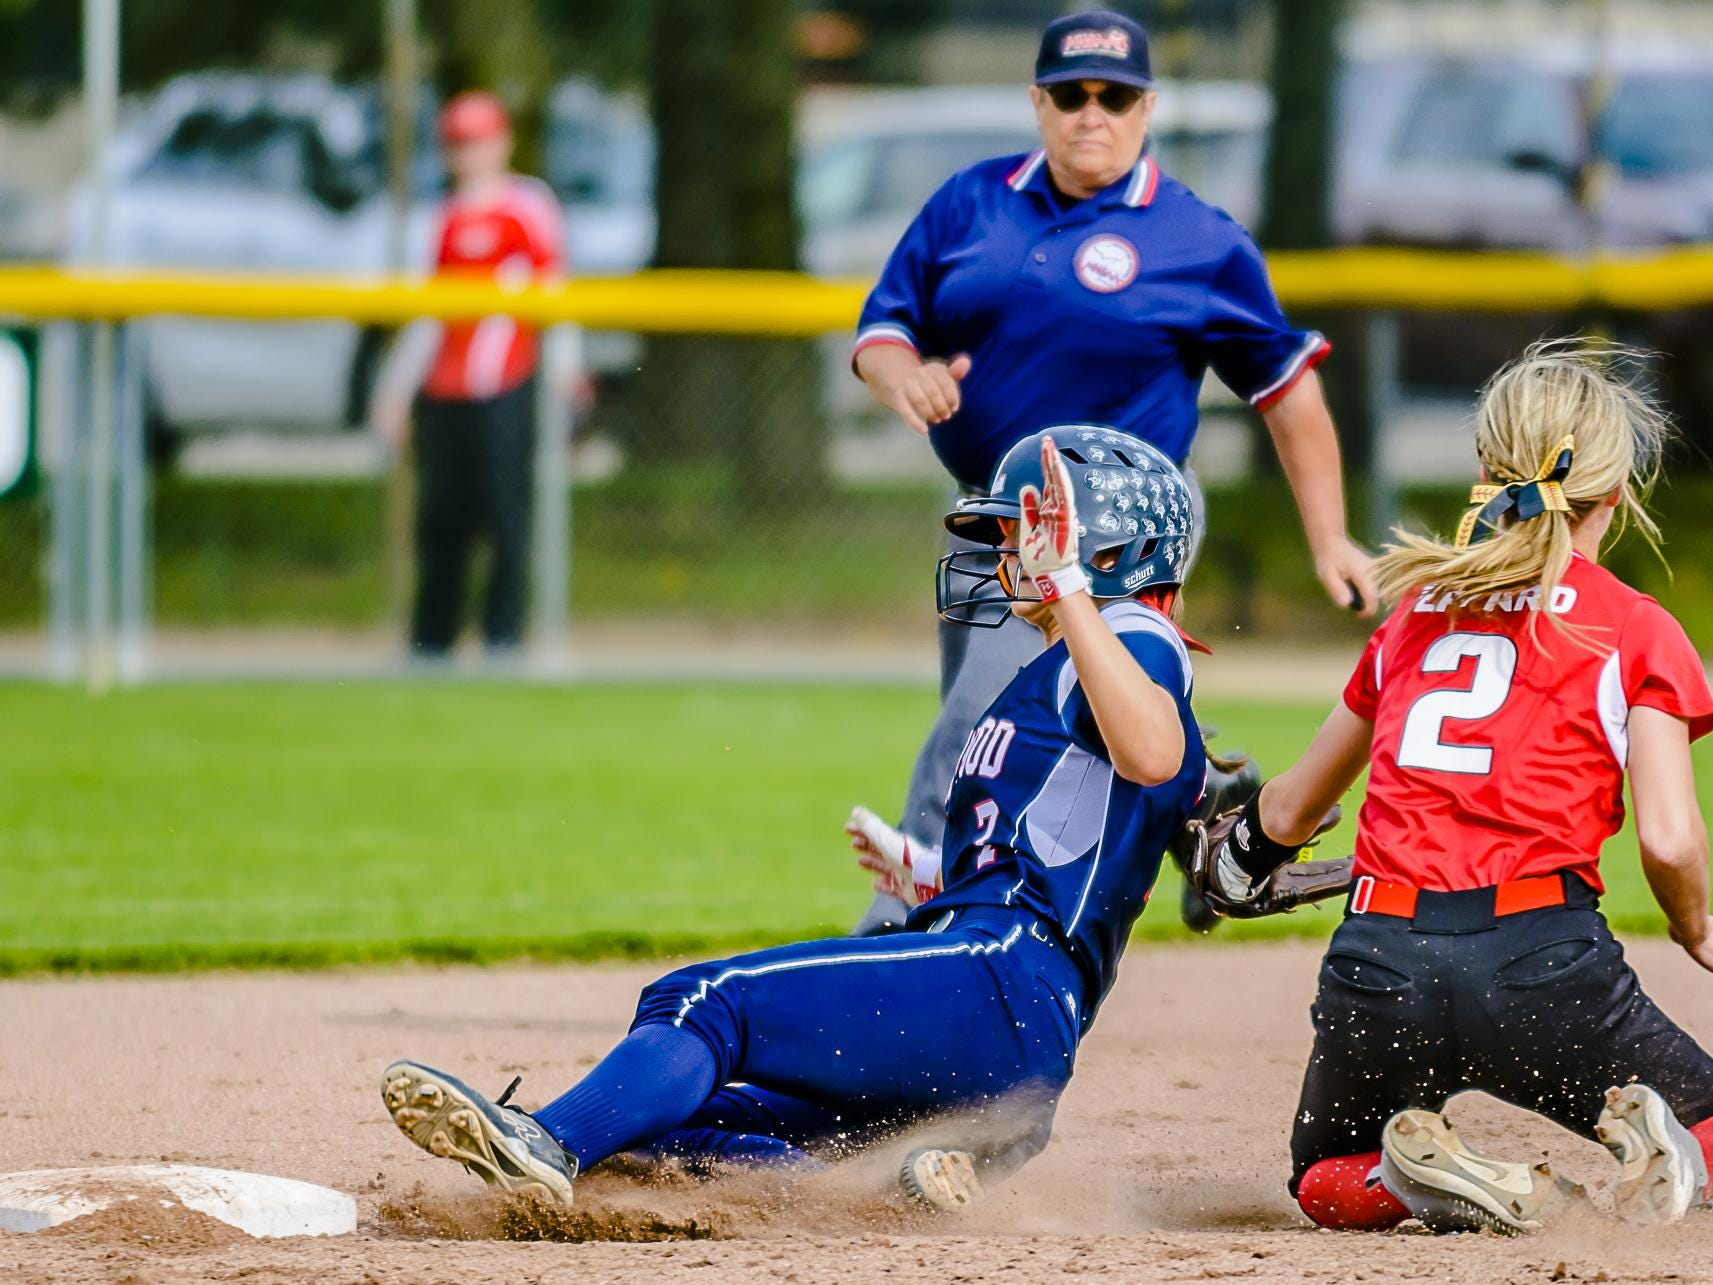 Kennedy Geiger ,left, of Lakewood slides past a tag attempt by Katie Eppard ,2, of Laingsburg to steal 2nd in the 3rd inning of their Softball Classic first round game Tuesday May 17, 2016 at Ranney Park in Lansing. KEVIN W. FOWLER PHOTO